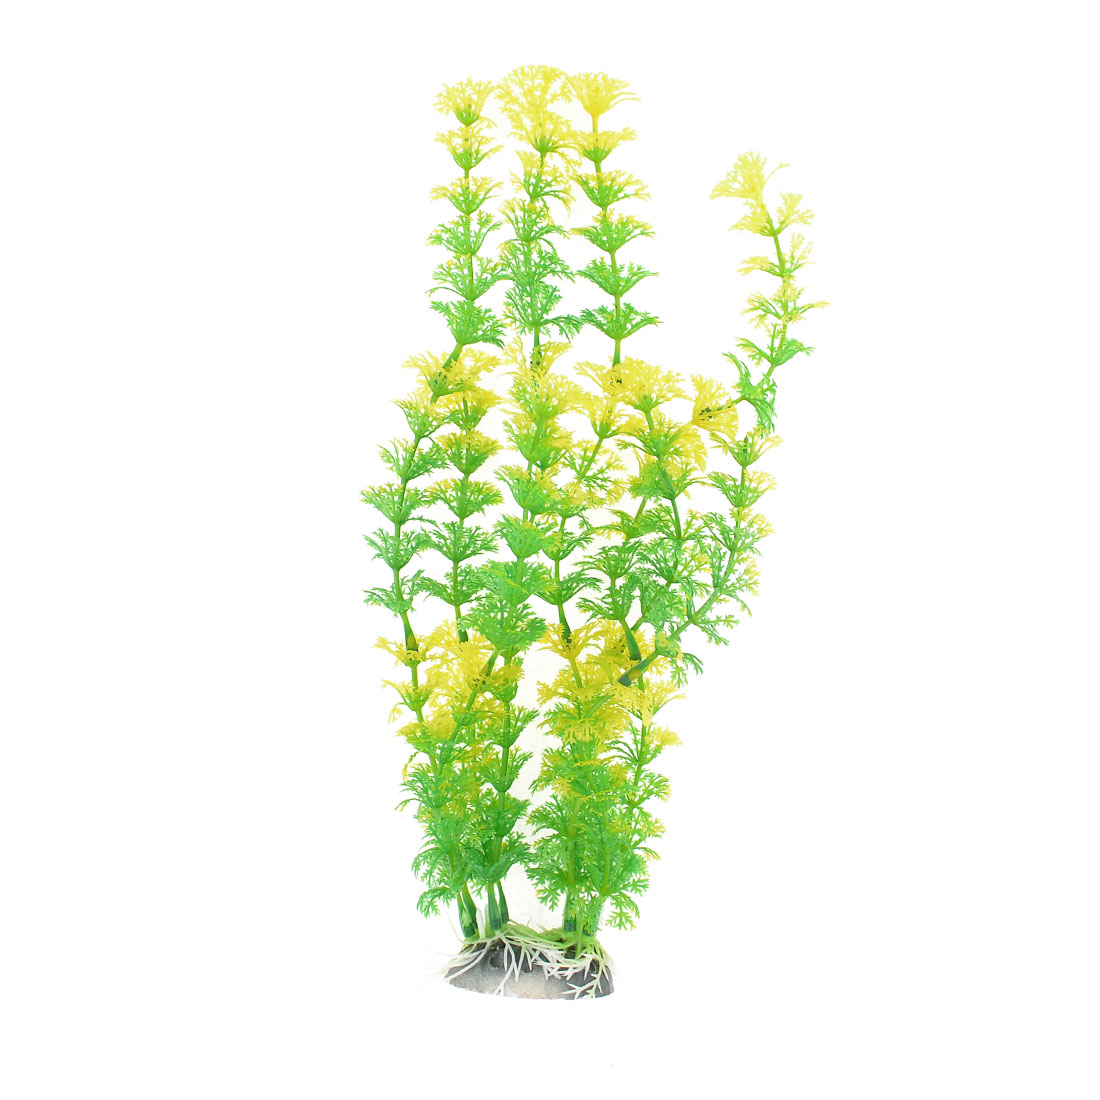 Green Yellow Snowflower Shaped Aquarium Decor Ceramic Base Aquatic Plant